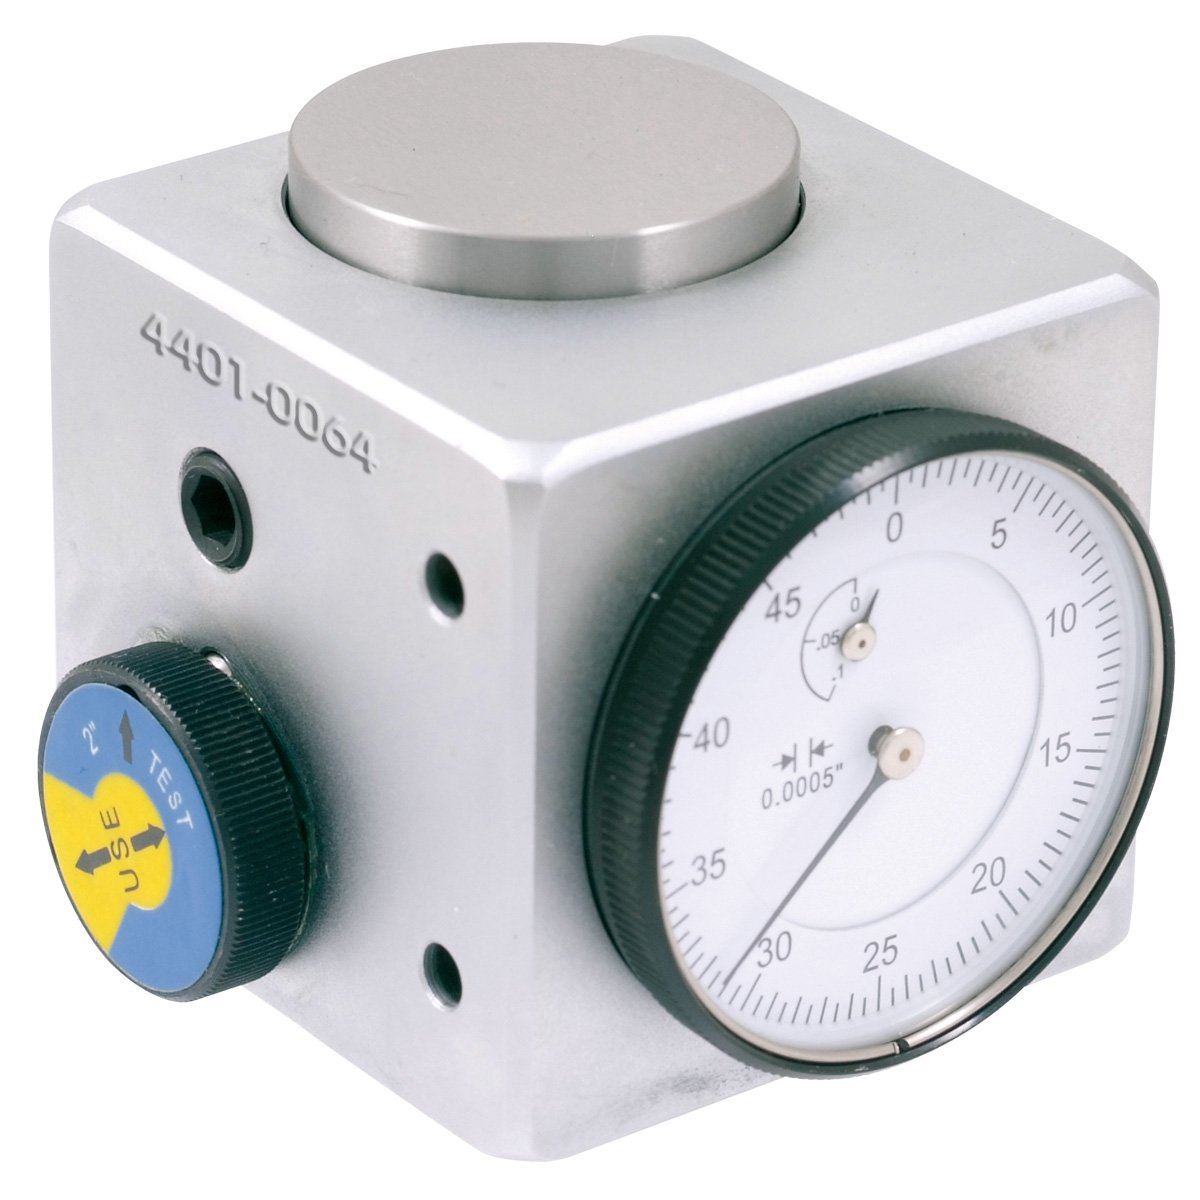 HHIP 4401-0064 Pro-Series Dial Z-Axis Setting Indicator with Mag Base, 2'' Square x 2'' Height